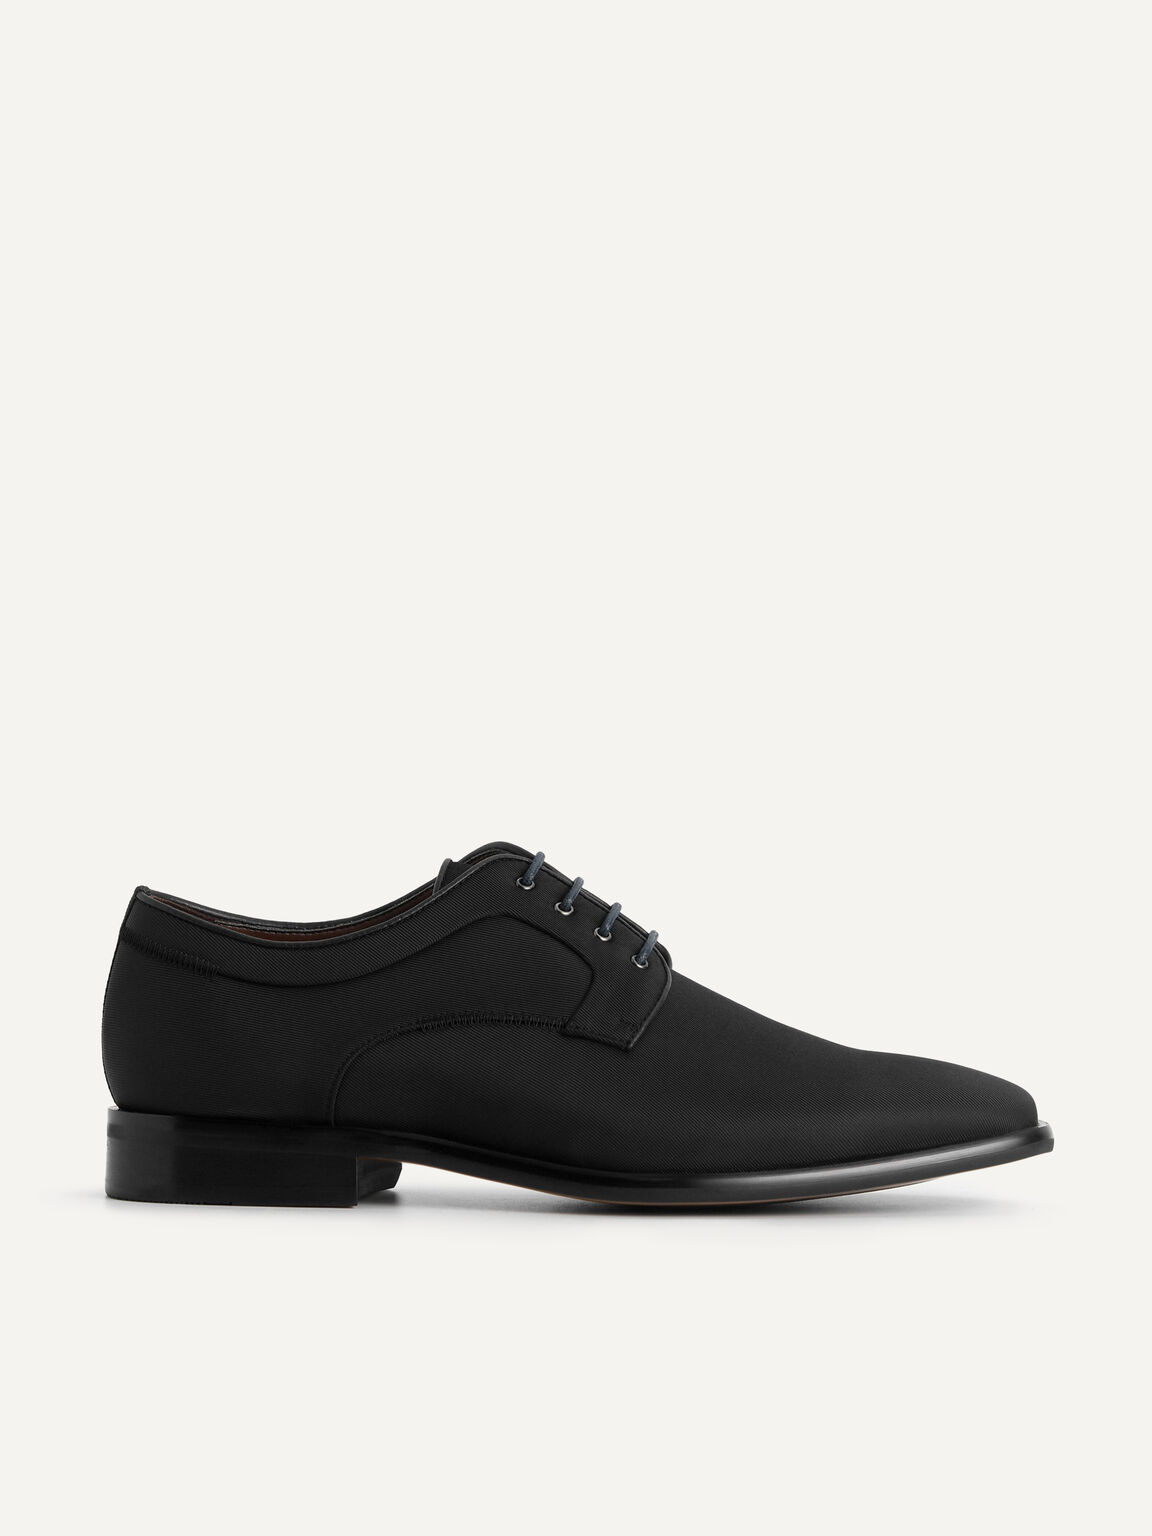 Pointed Square Toe Derby Shoes, Black, hi-res